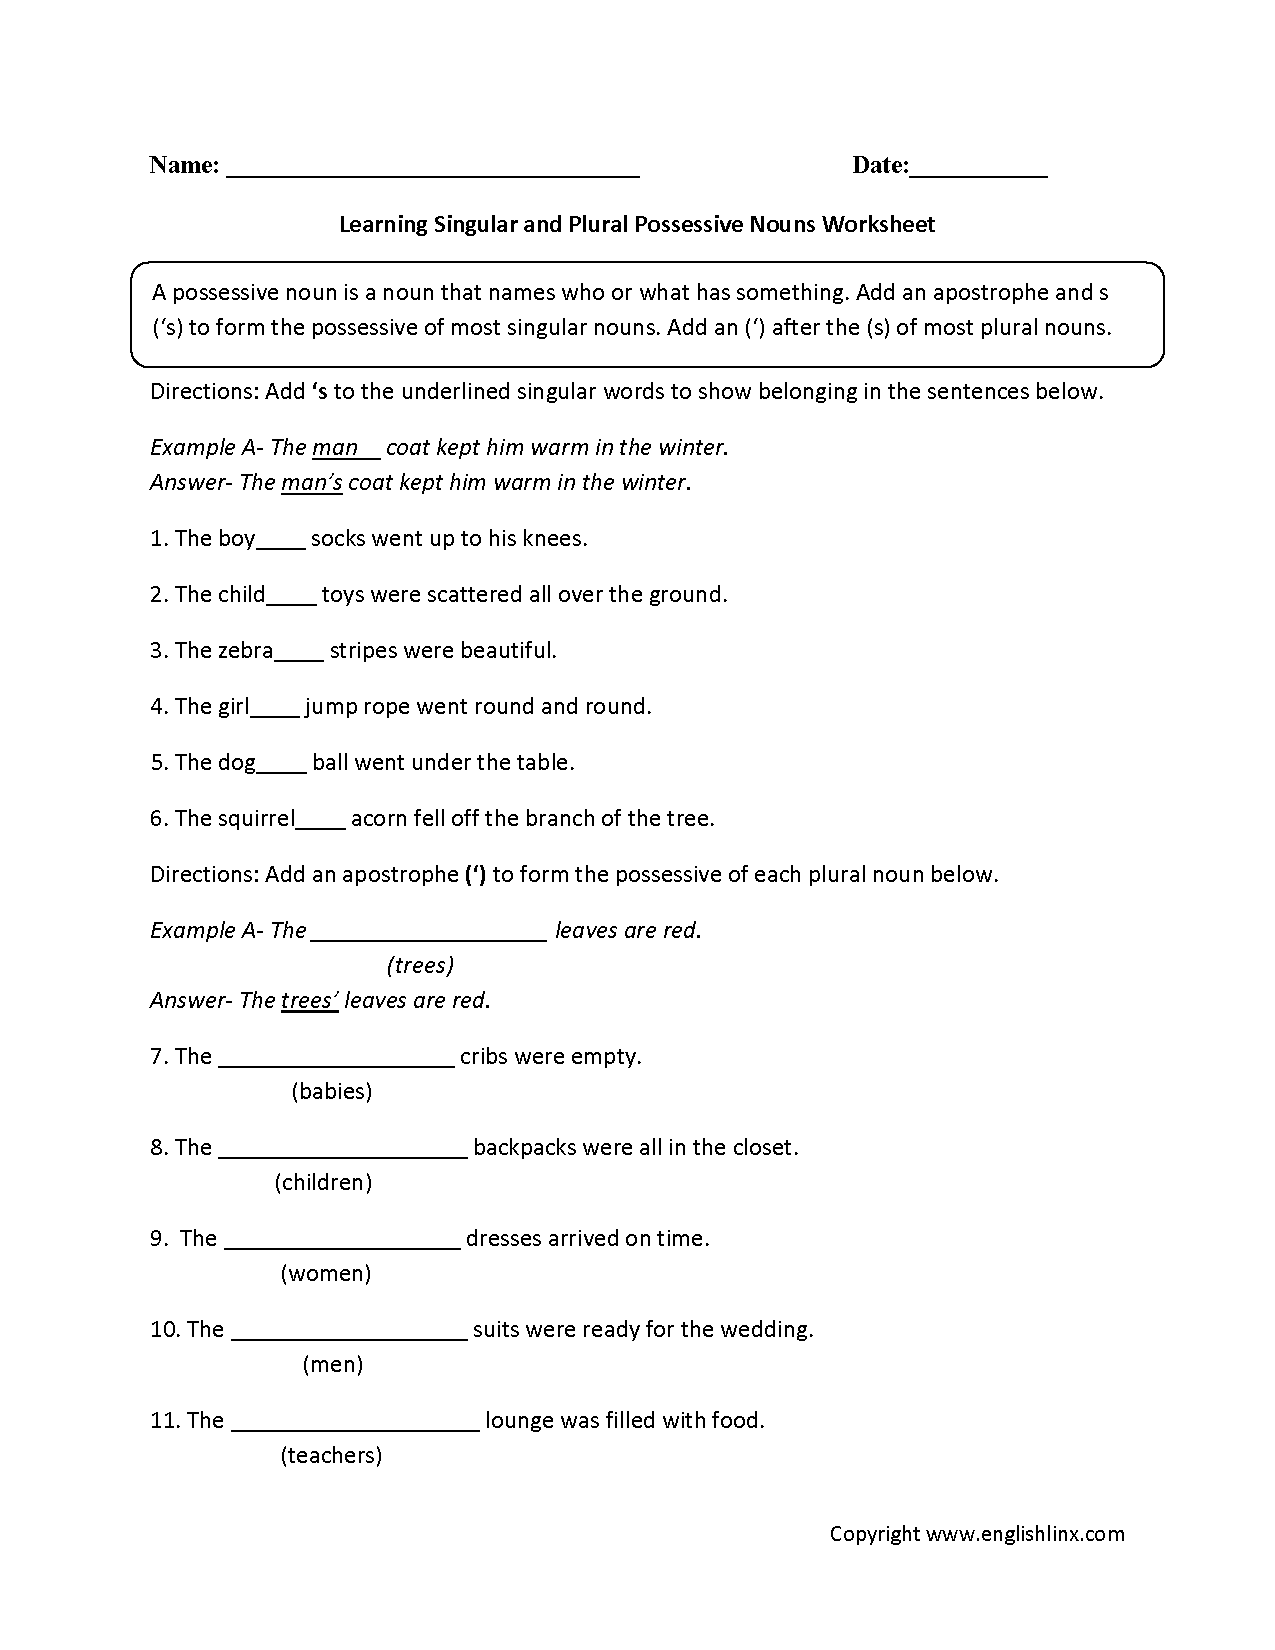 Printables Possessive Nouns Worksheets nouns worksheets possessive worksheet